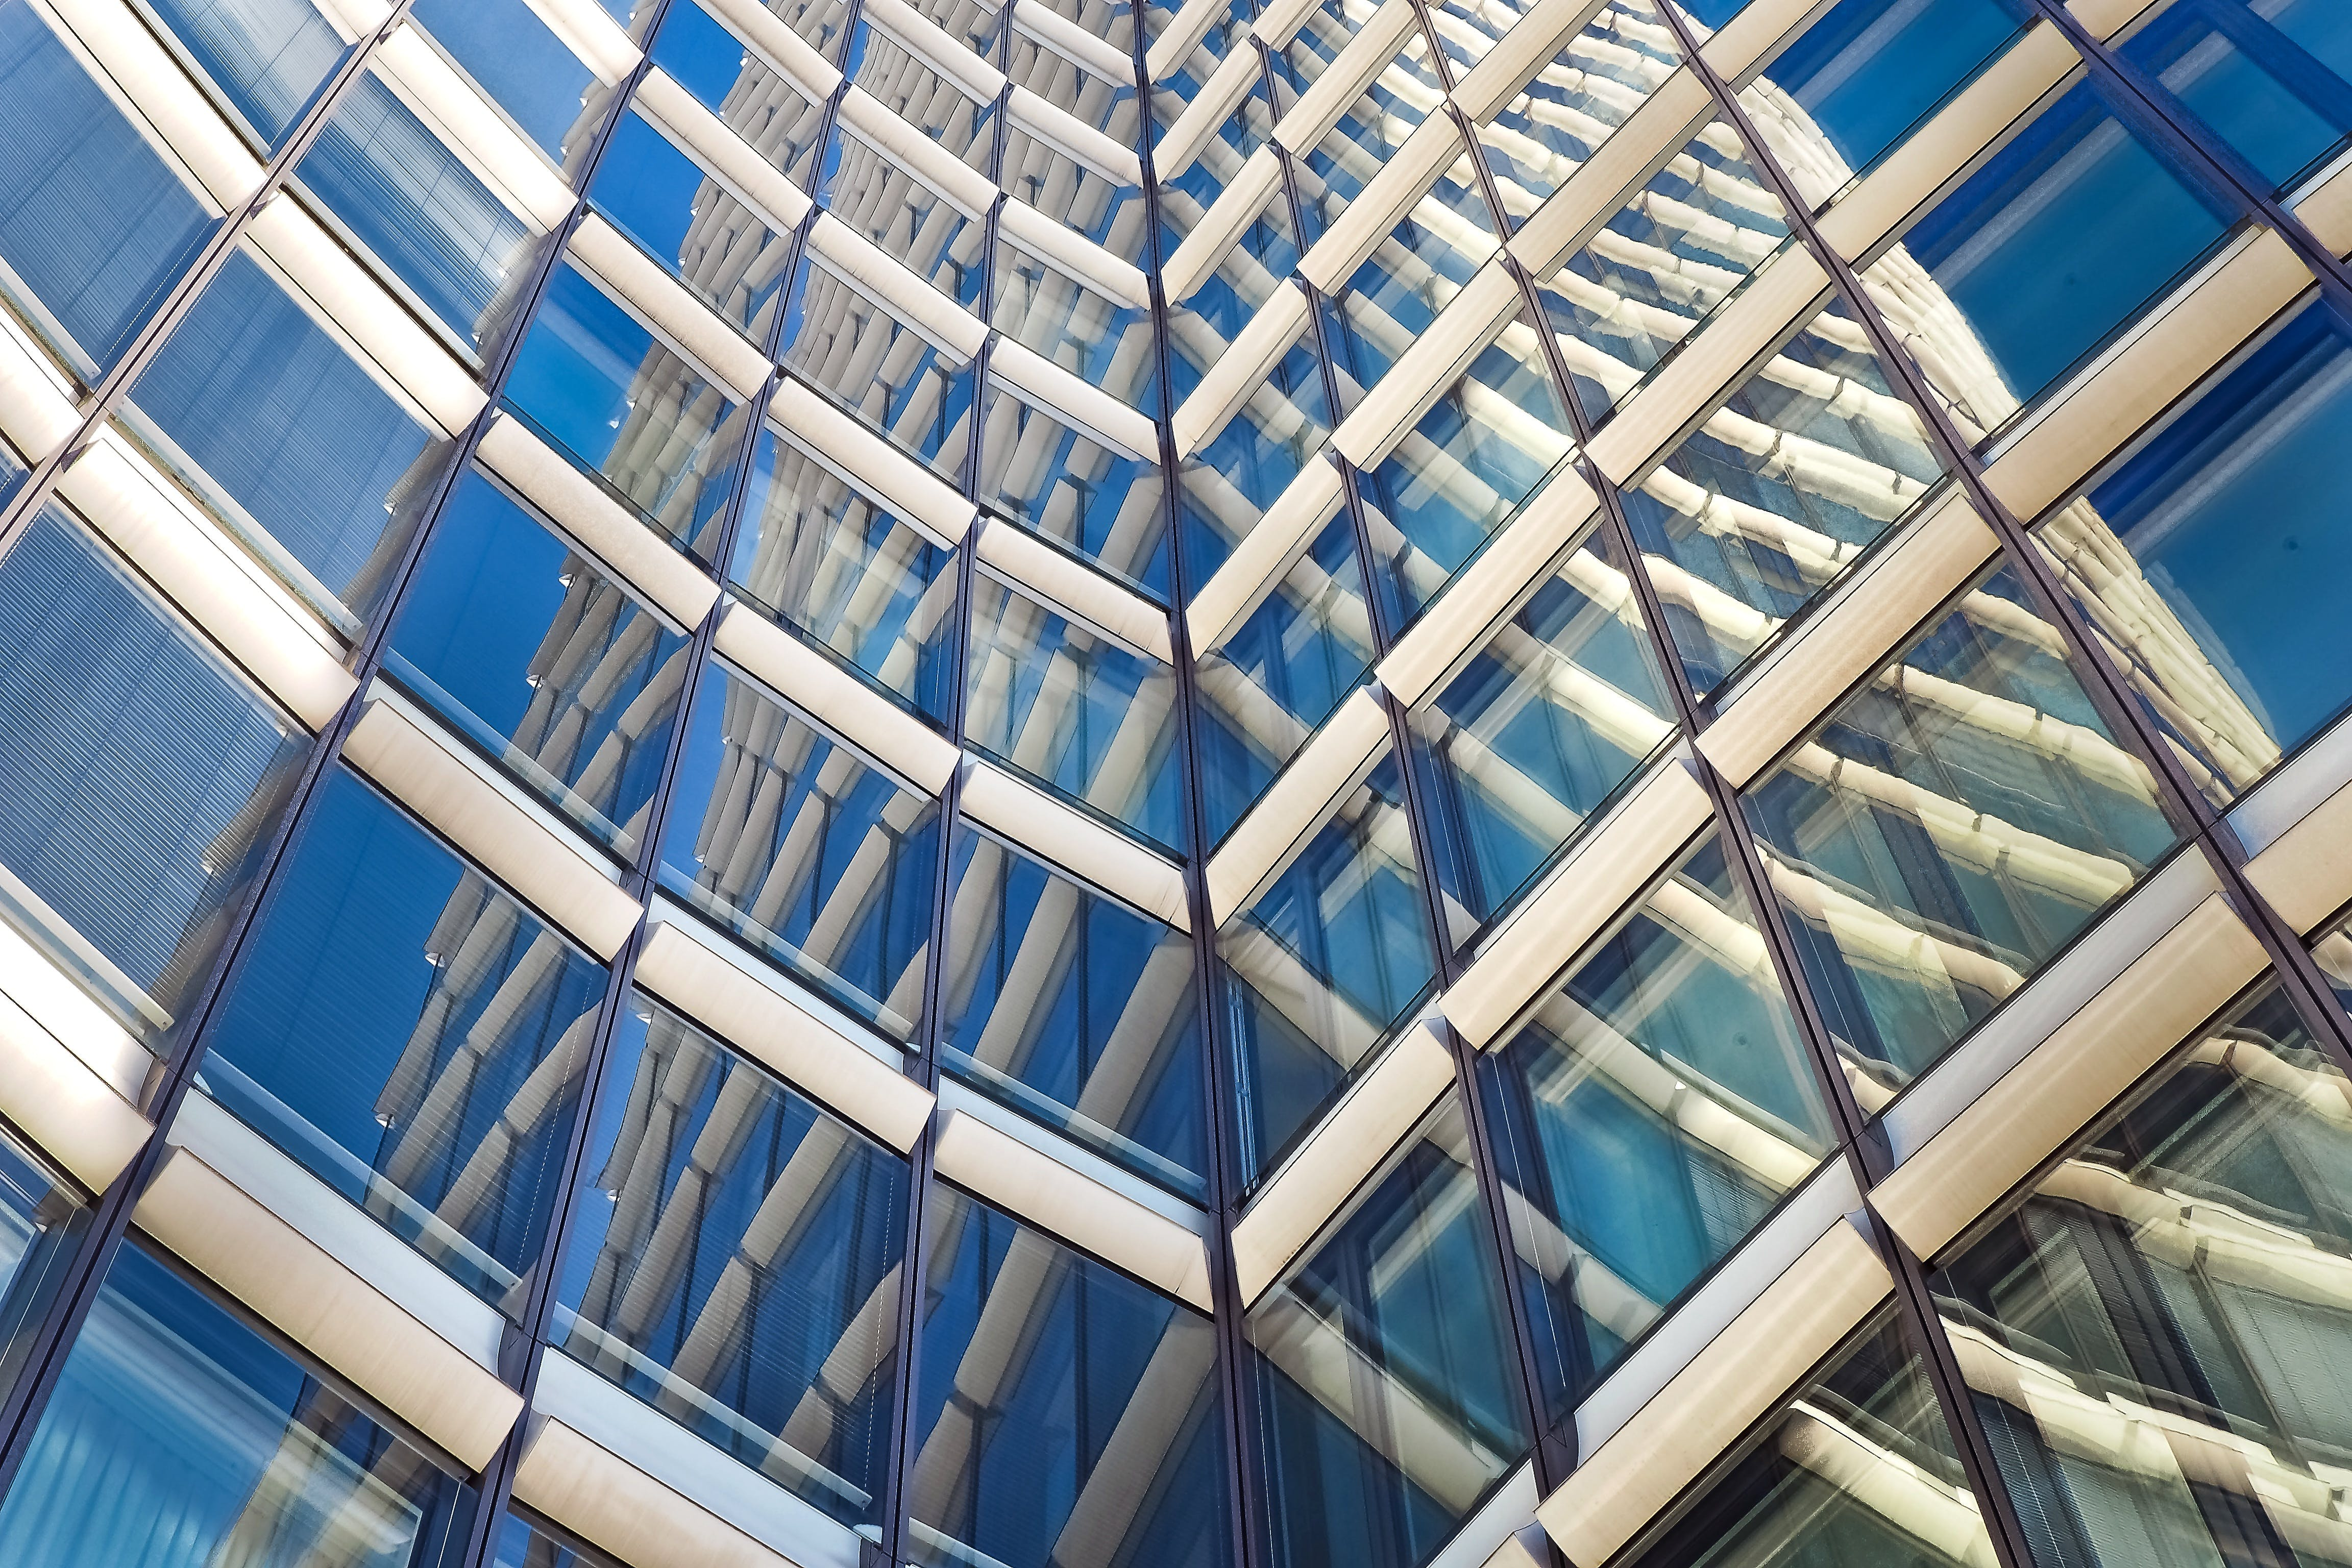 Low-angle Photography of White and Blue High-rise Building